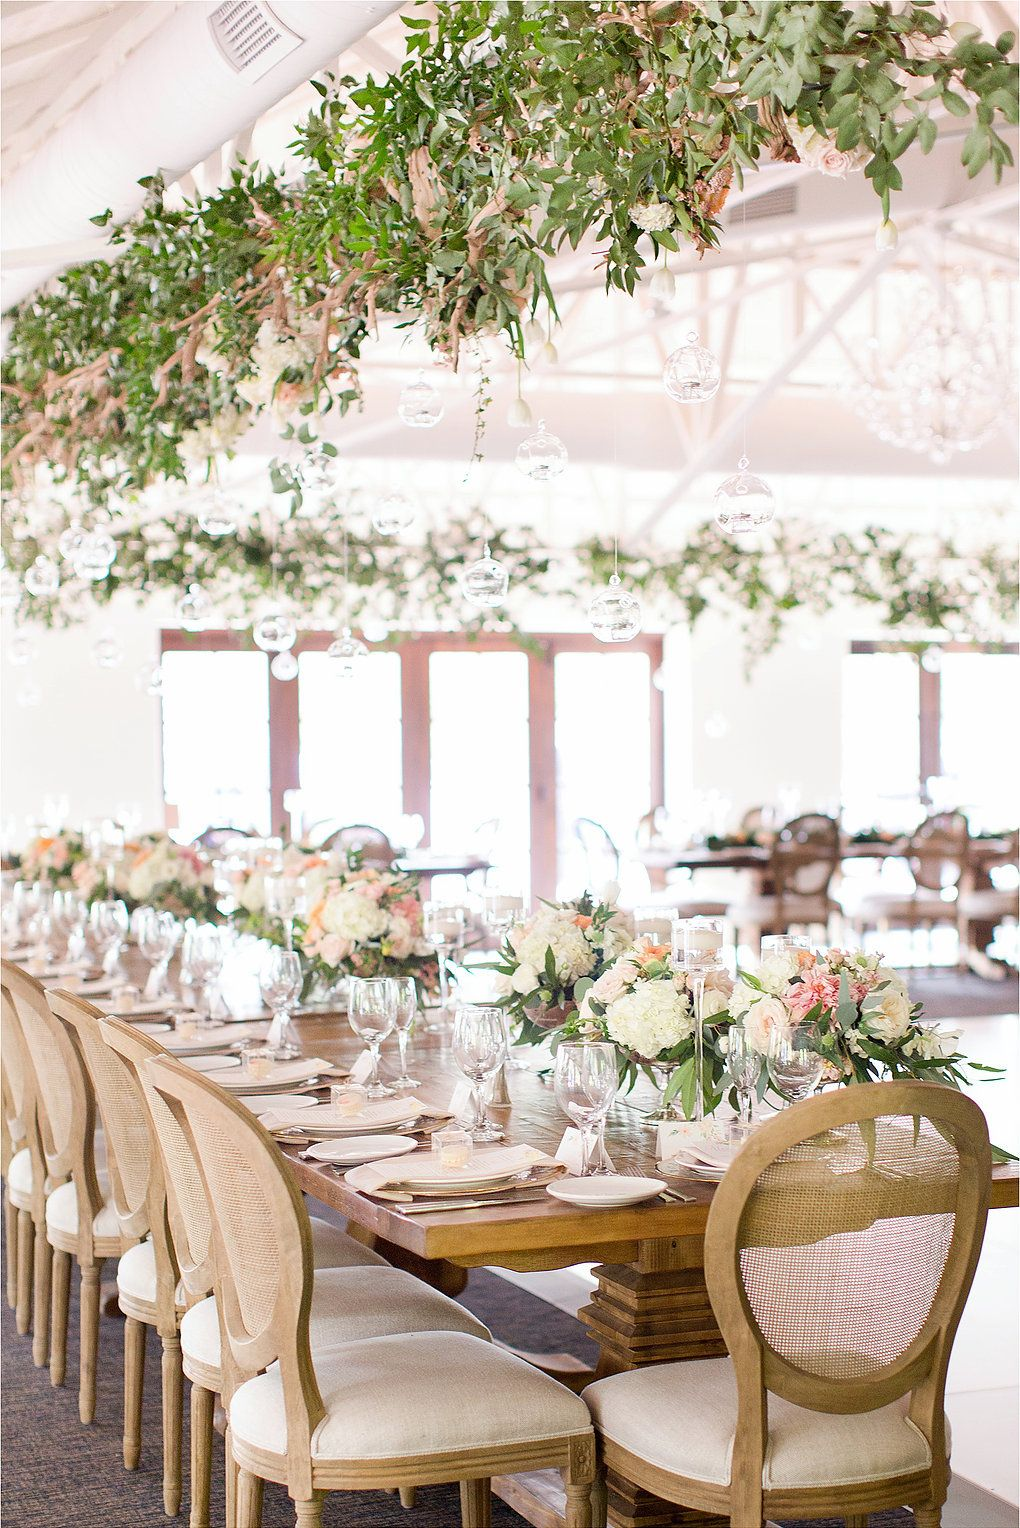 Fancy wedding decoration tumblr images the wedding ideas gallery of wedding decoration tumblr pinterest m4ddymarie instagram madeleinepetti tumblr junglespirit Images